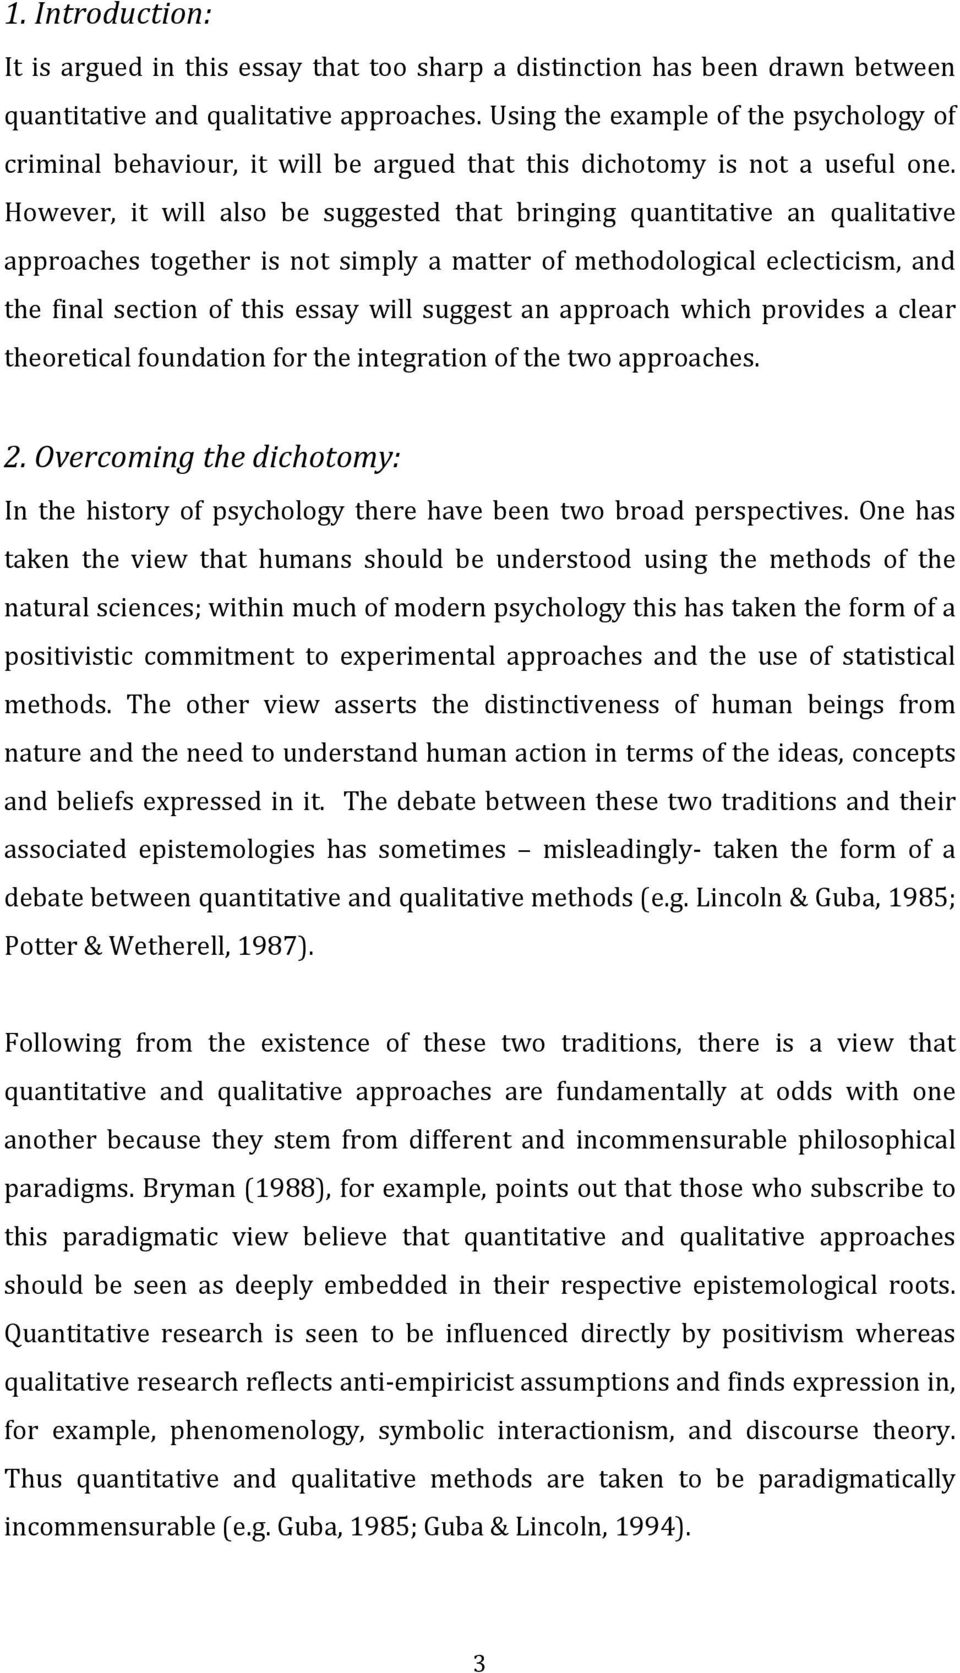 However, it will also be suggested that bringing quantitative an qualitative approaches together is not simply a matter of methodological eclecticism, and the final section of this essay will suggest